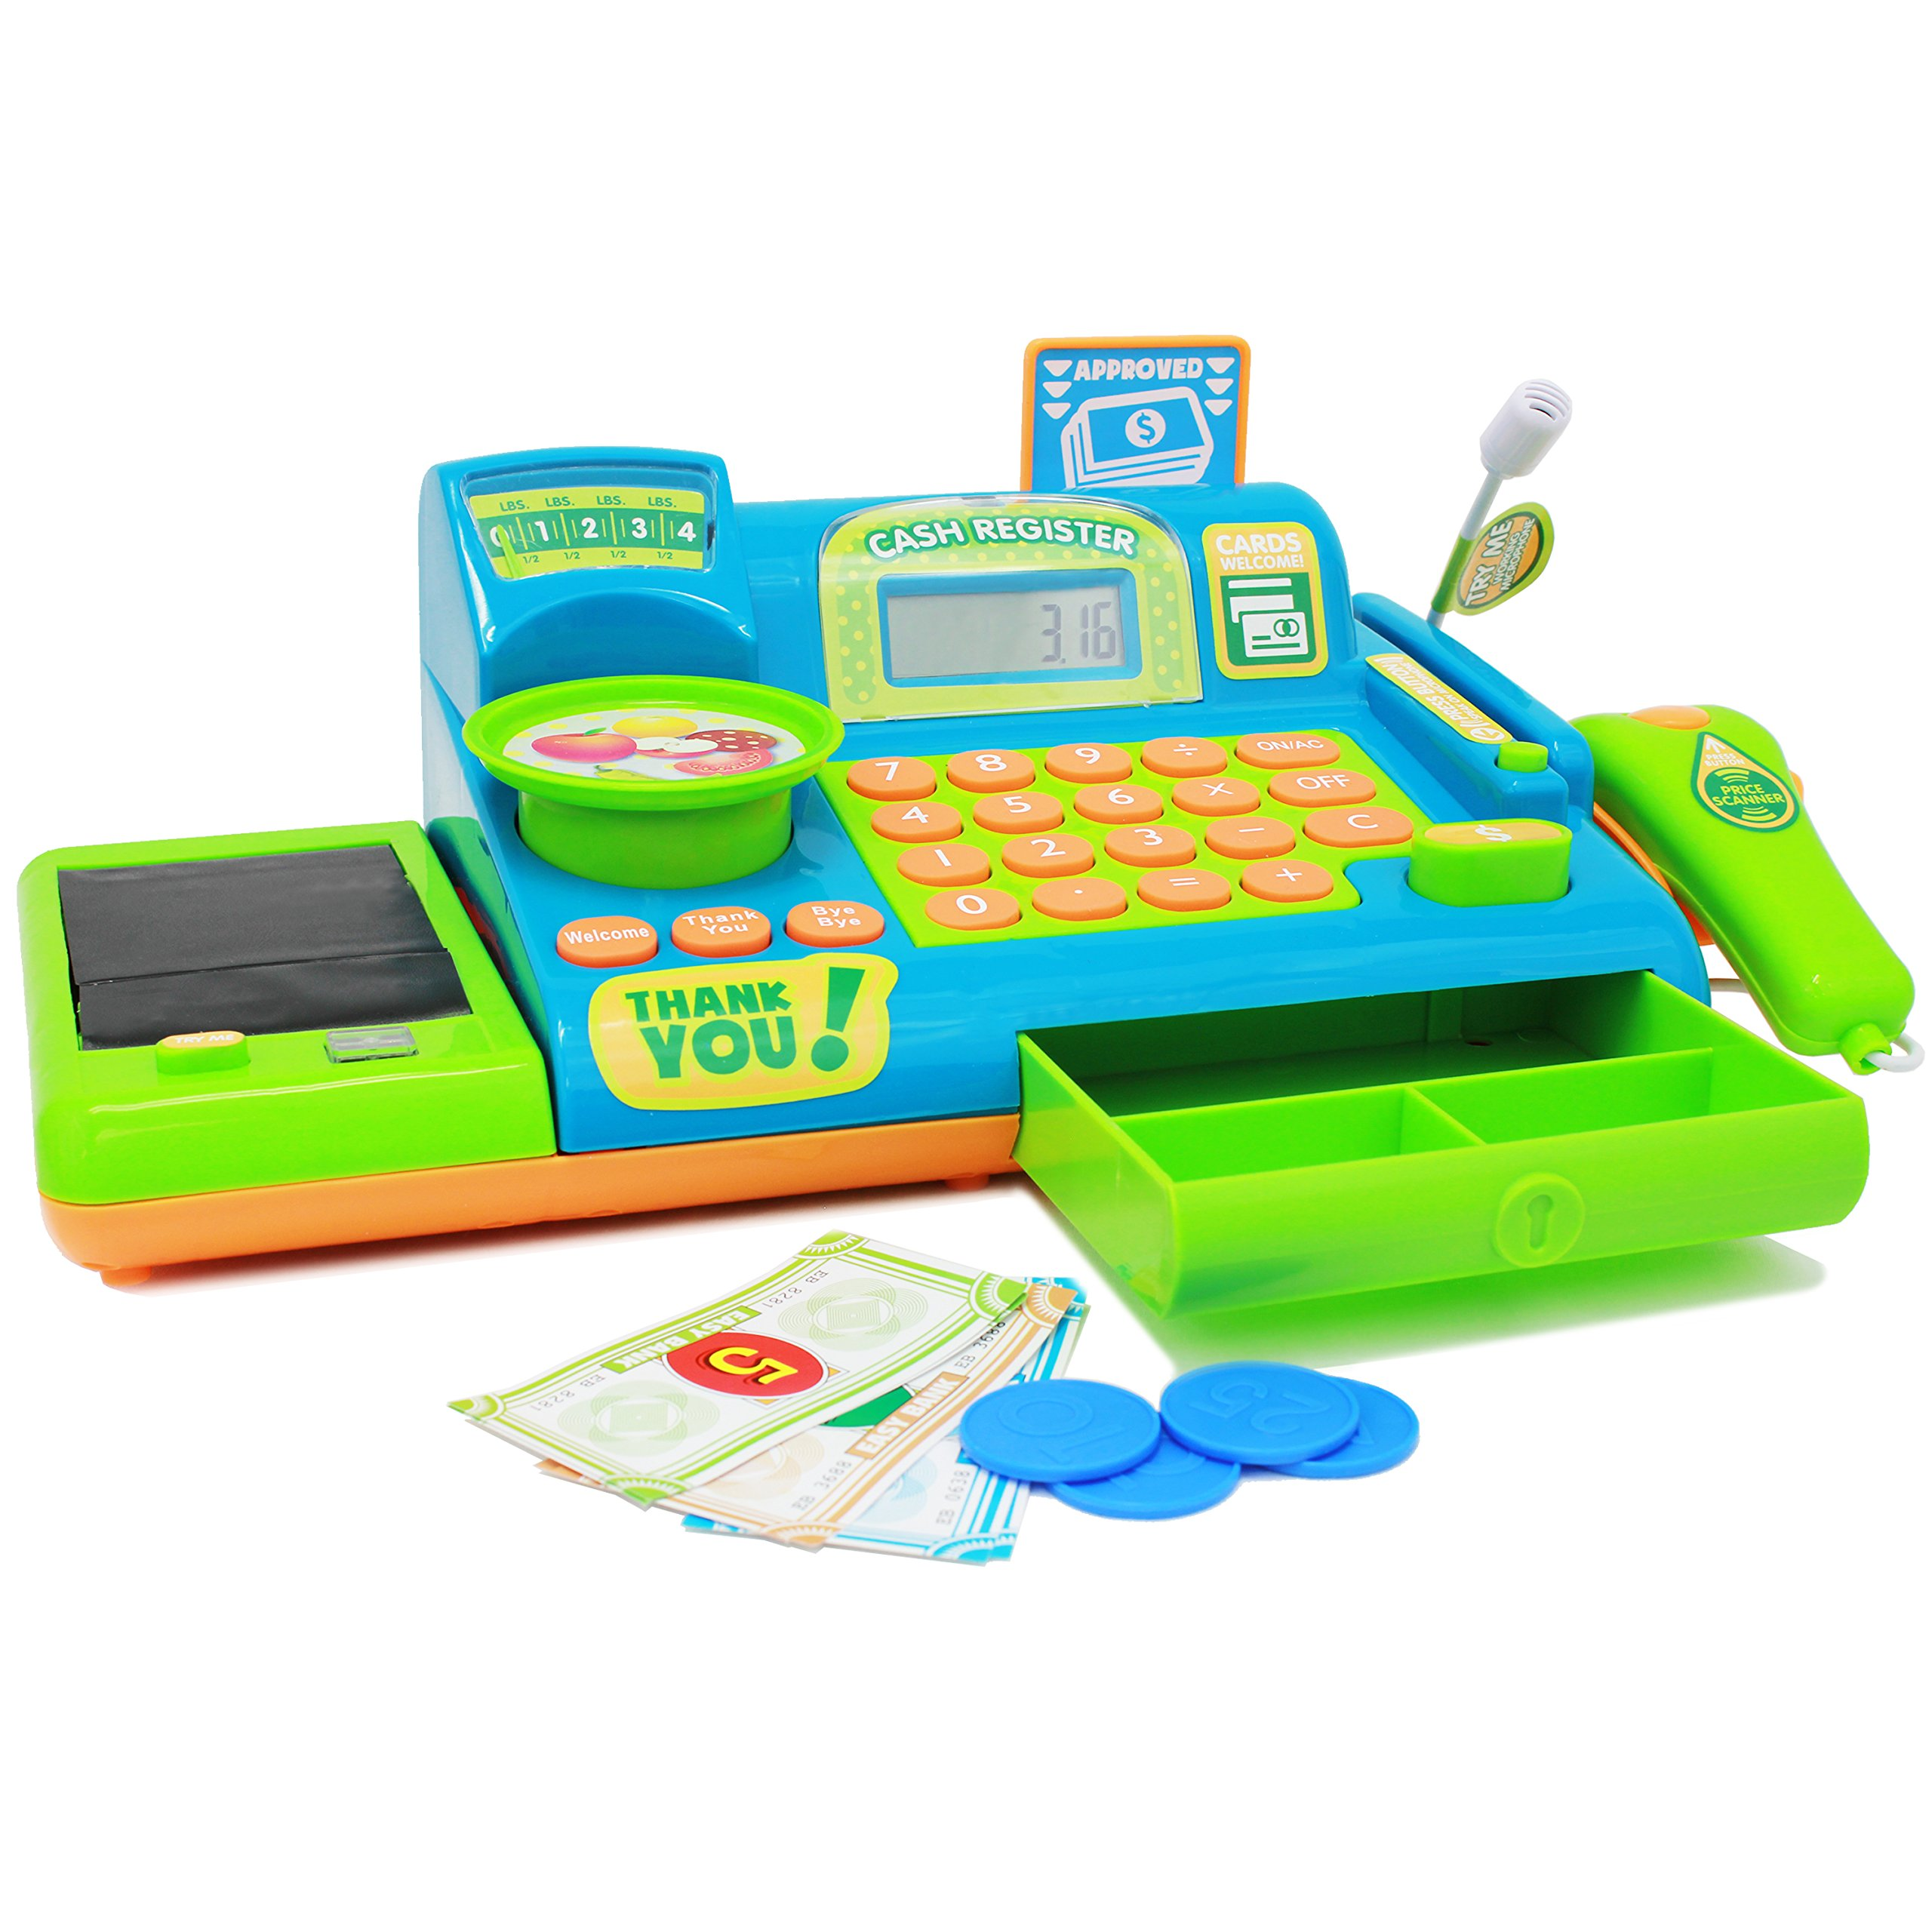 Boley Kids Toy Cash Register - Pretend Play Educational Toy Cash Register Electronic Sounds, Play Money, Grocery Toy More!